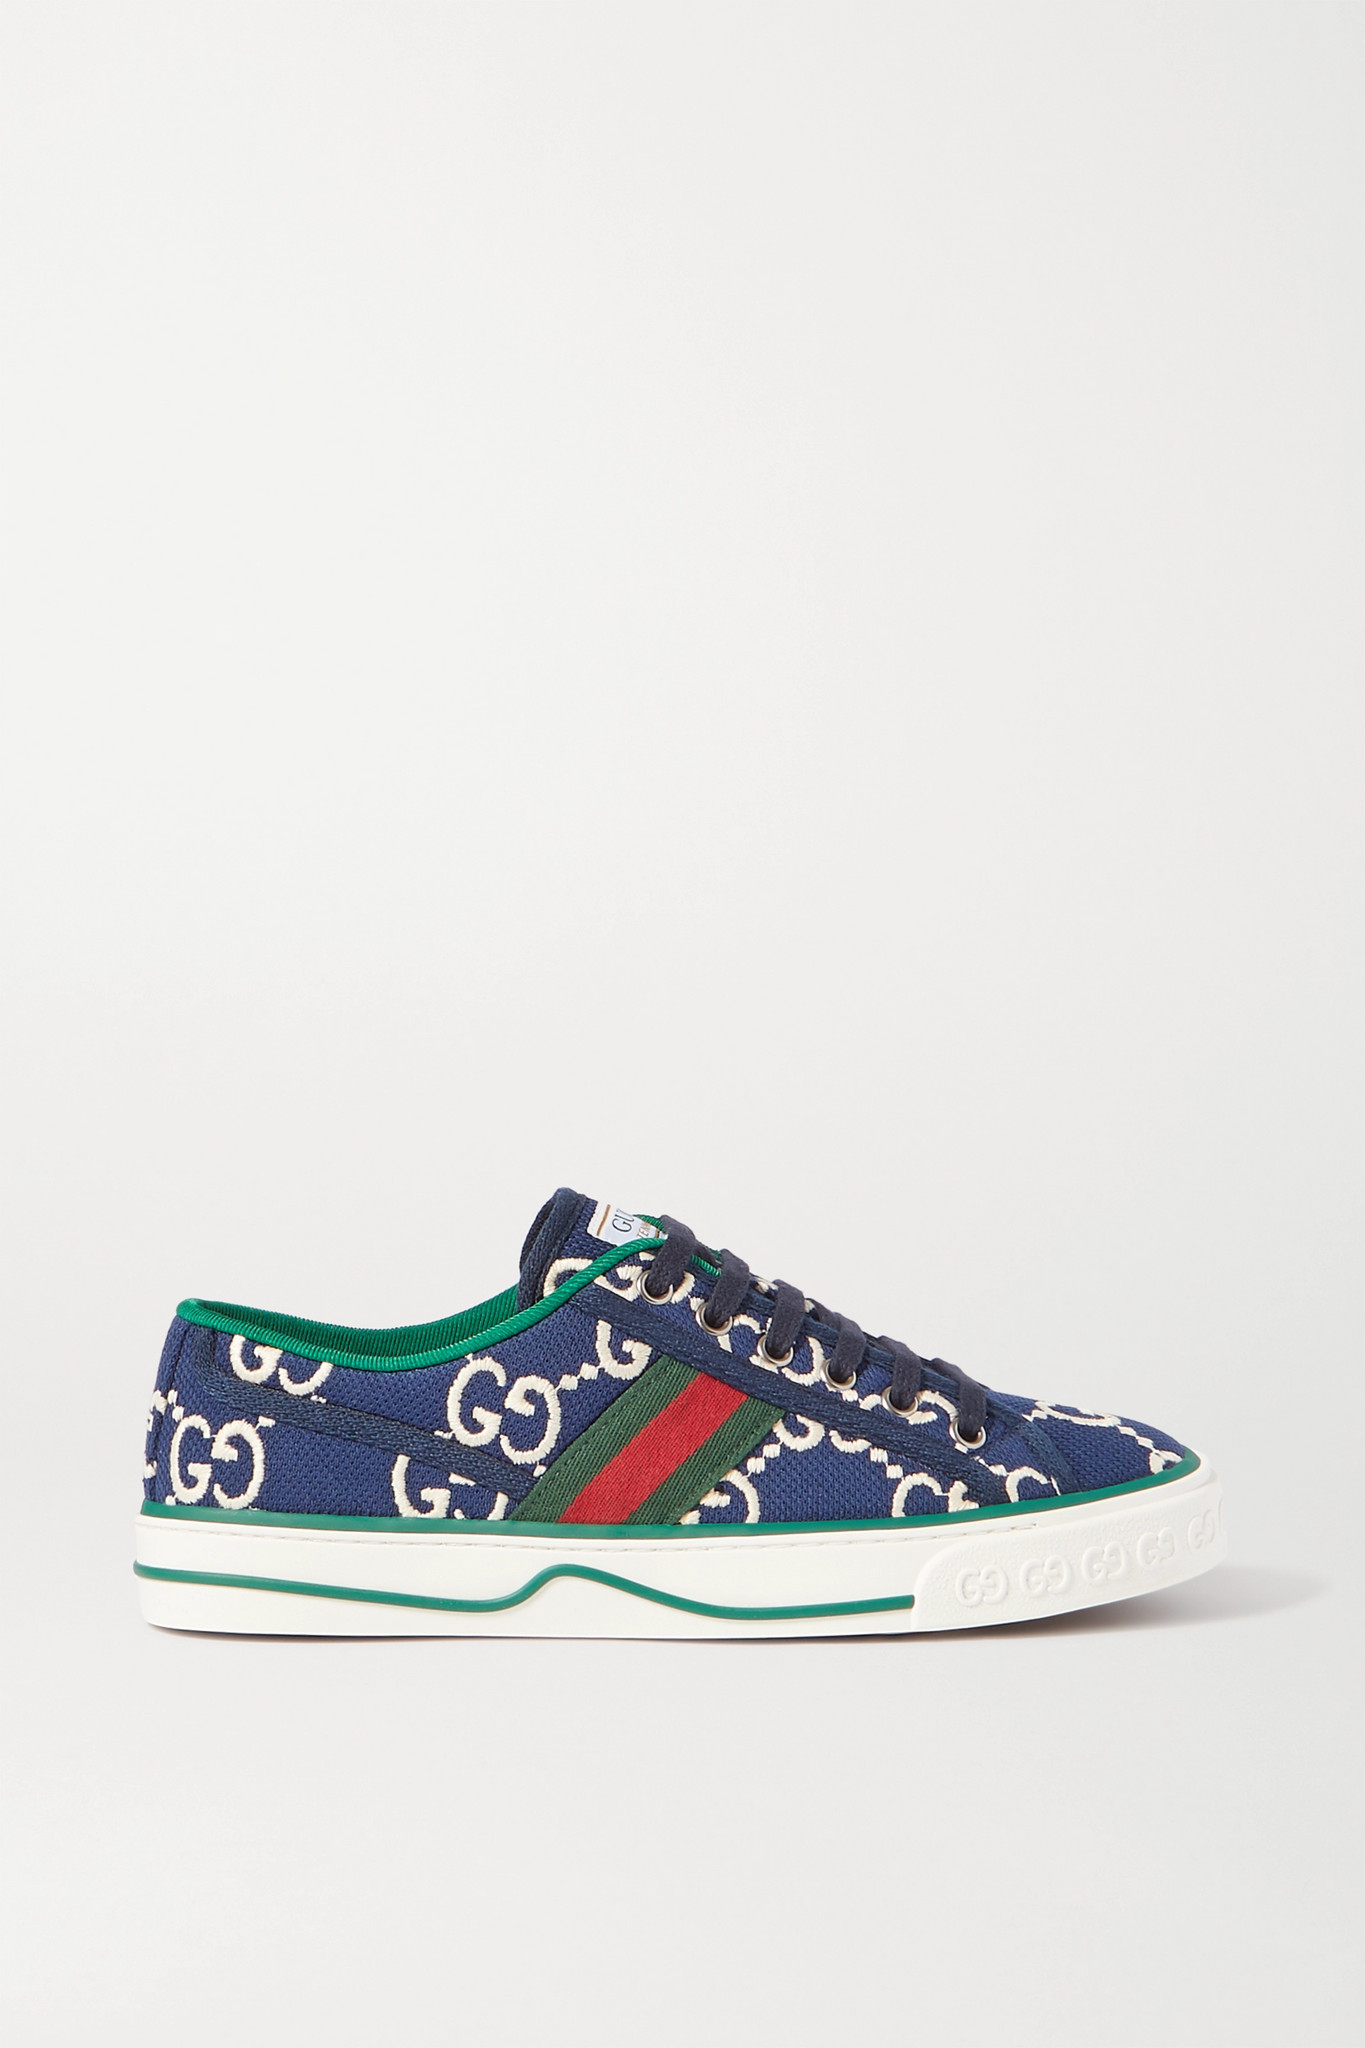 GUCCI - TENNIS 1977 LOGO-EMBROIDERED CANVAS SNEAKERS